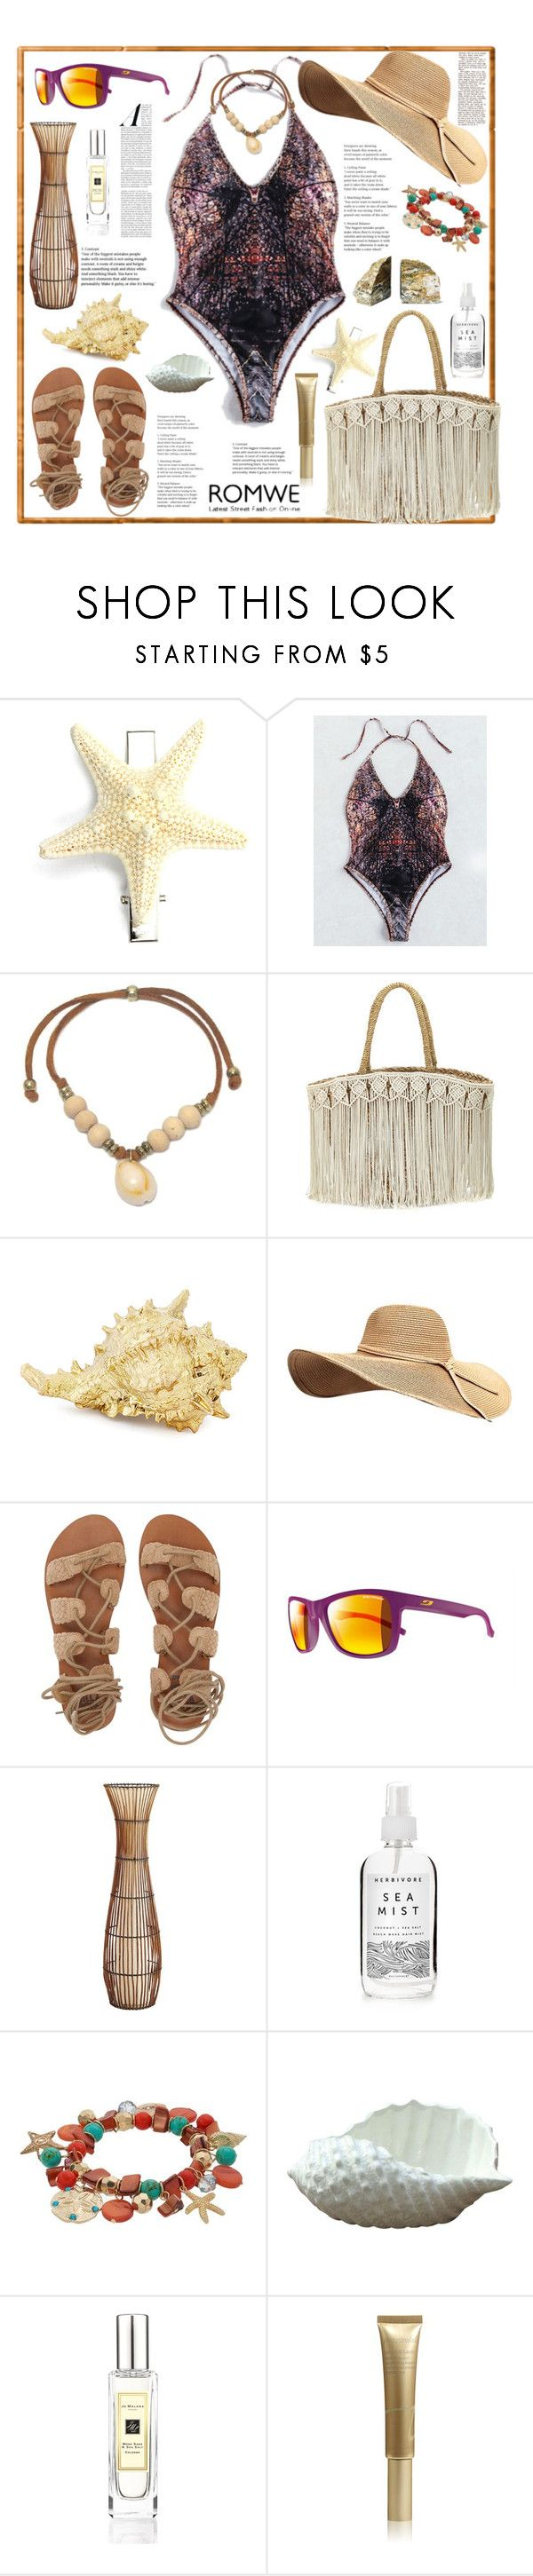 """""""ROMWE. Sea finds."""" by natalyapril1976 ❤ liked on Polyvore featuring Flora Bella, Philmore, Billabong, Julbo, Pier 1 Imports, Herbivore, Jo Malone and Jane Iredale"""